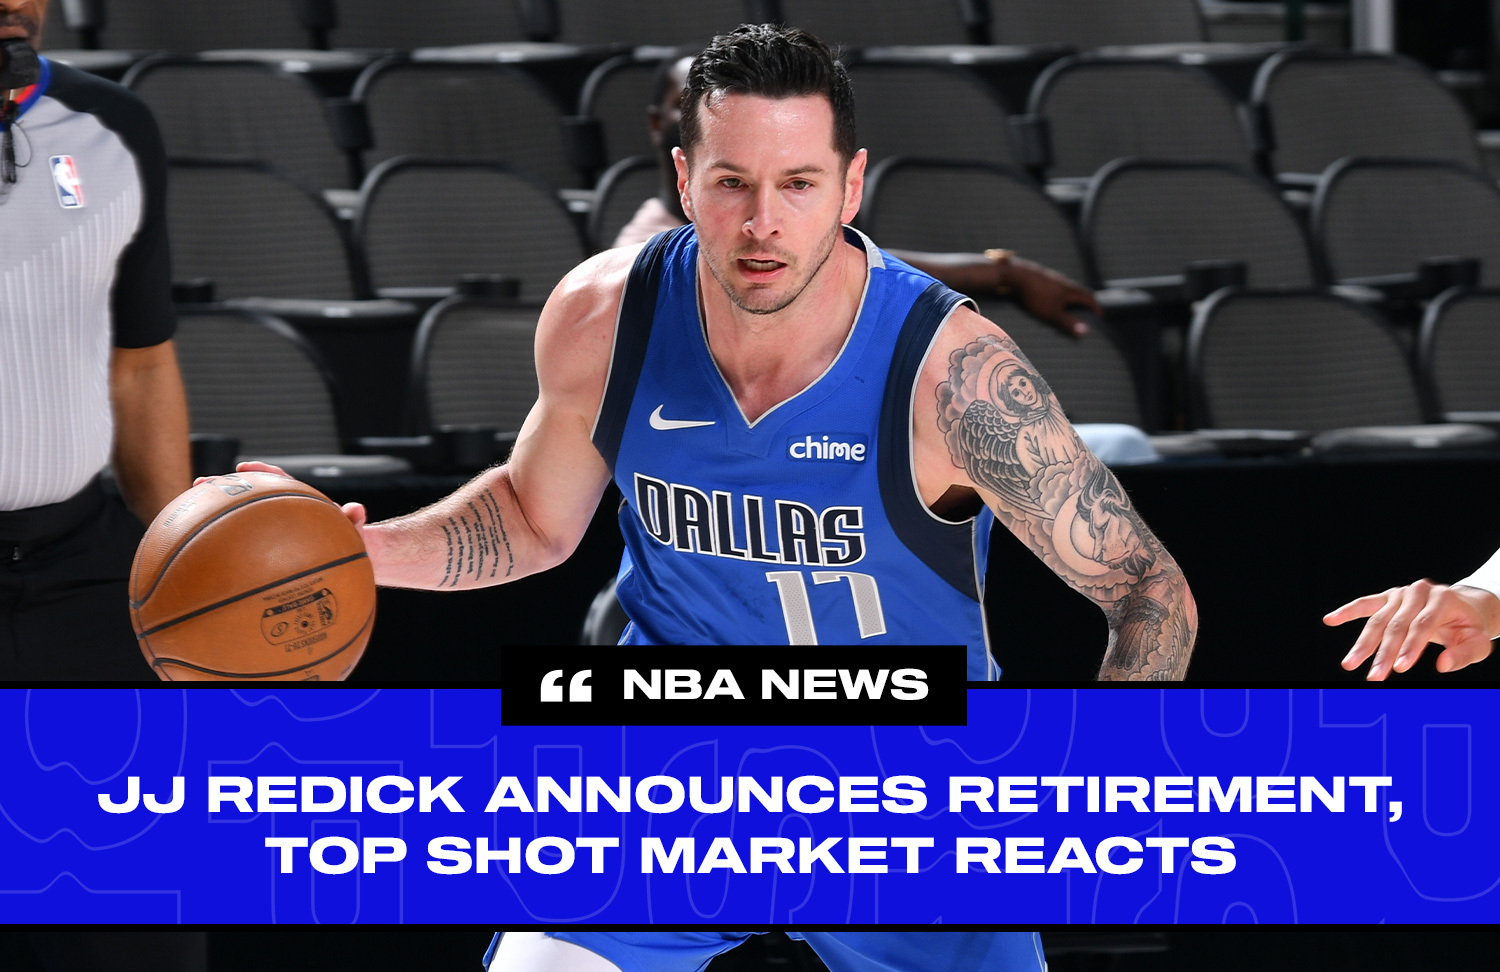 JJ Redick put together a great NBA career. Let's take a closer look at his impact.